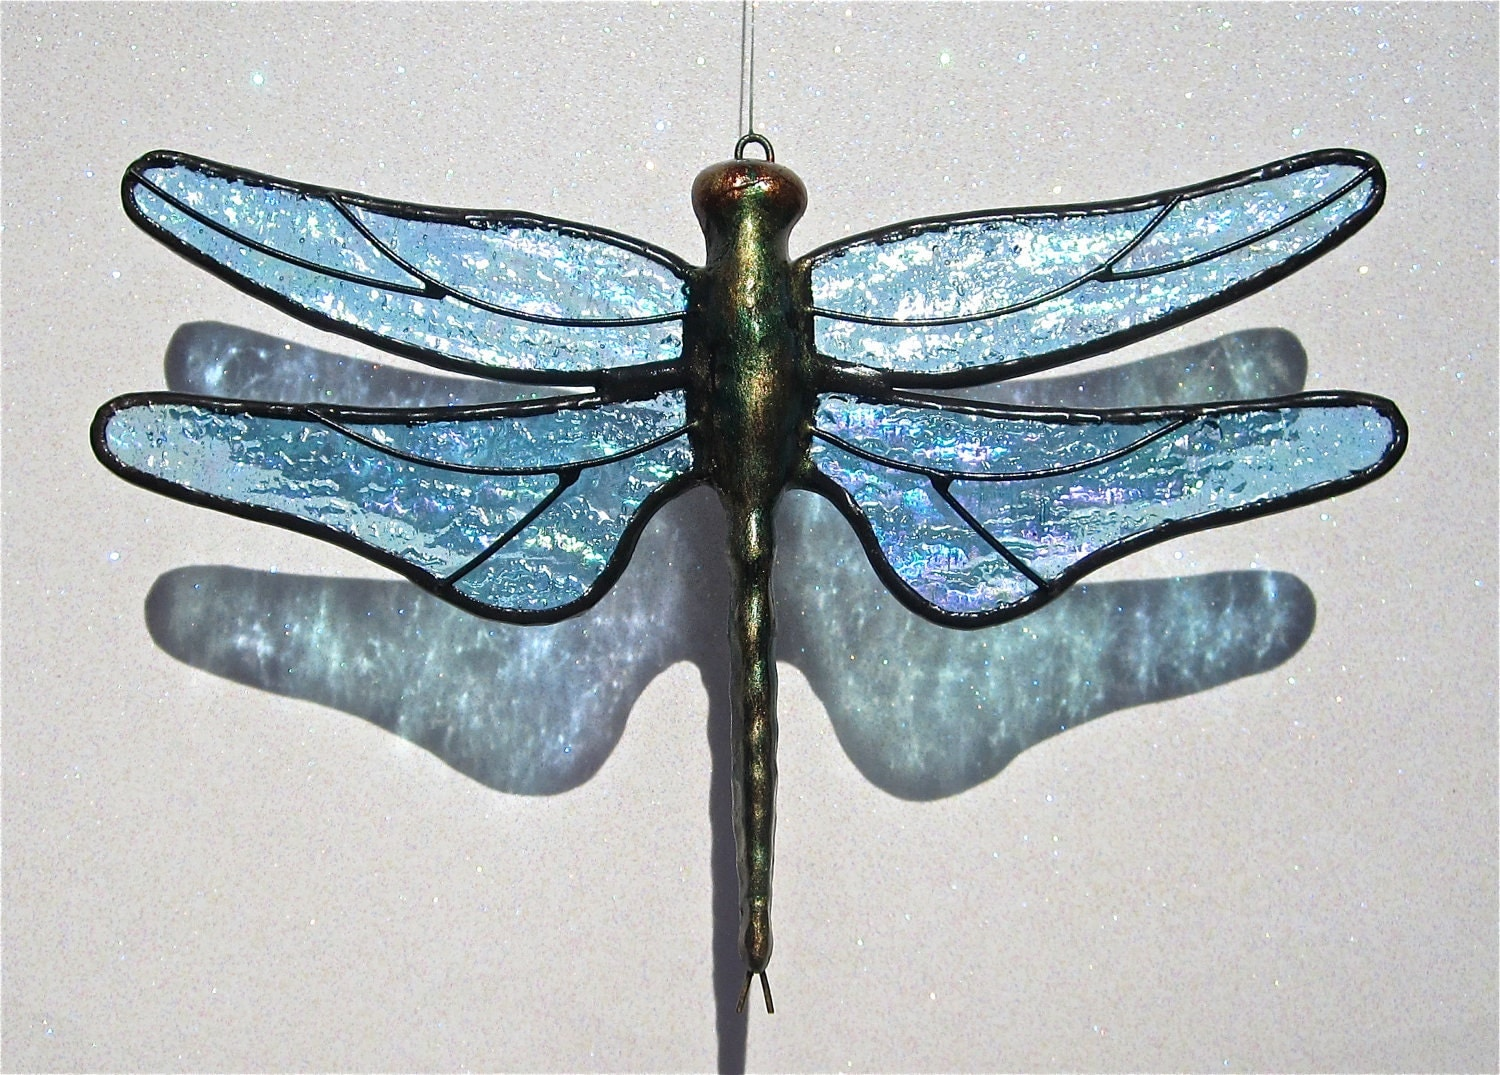 Stained Glass DRAGONFLY Suncatcher, Sparkling Light Ice Blue, Iridescent Wings & Handcast Metal Body, USA Handmade - stainedglasswhimsy